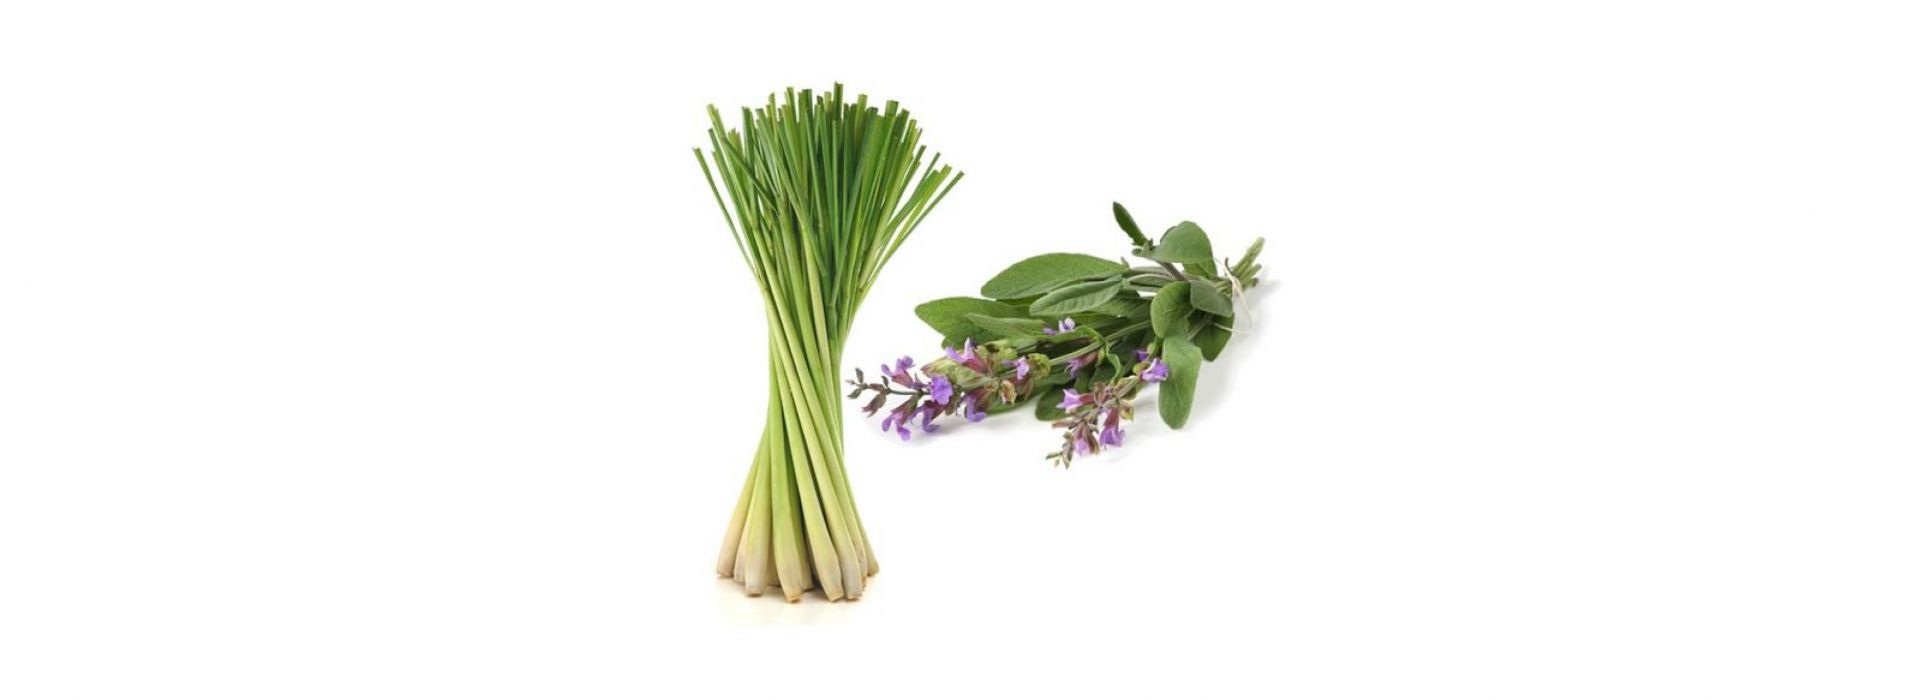 Herb Lemon Grass